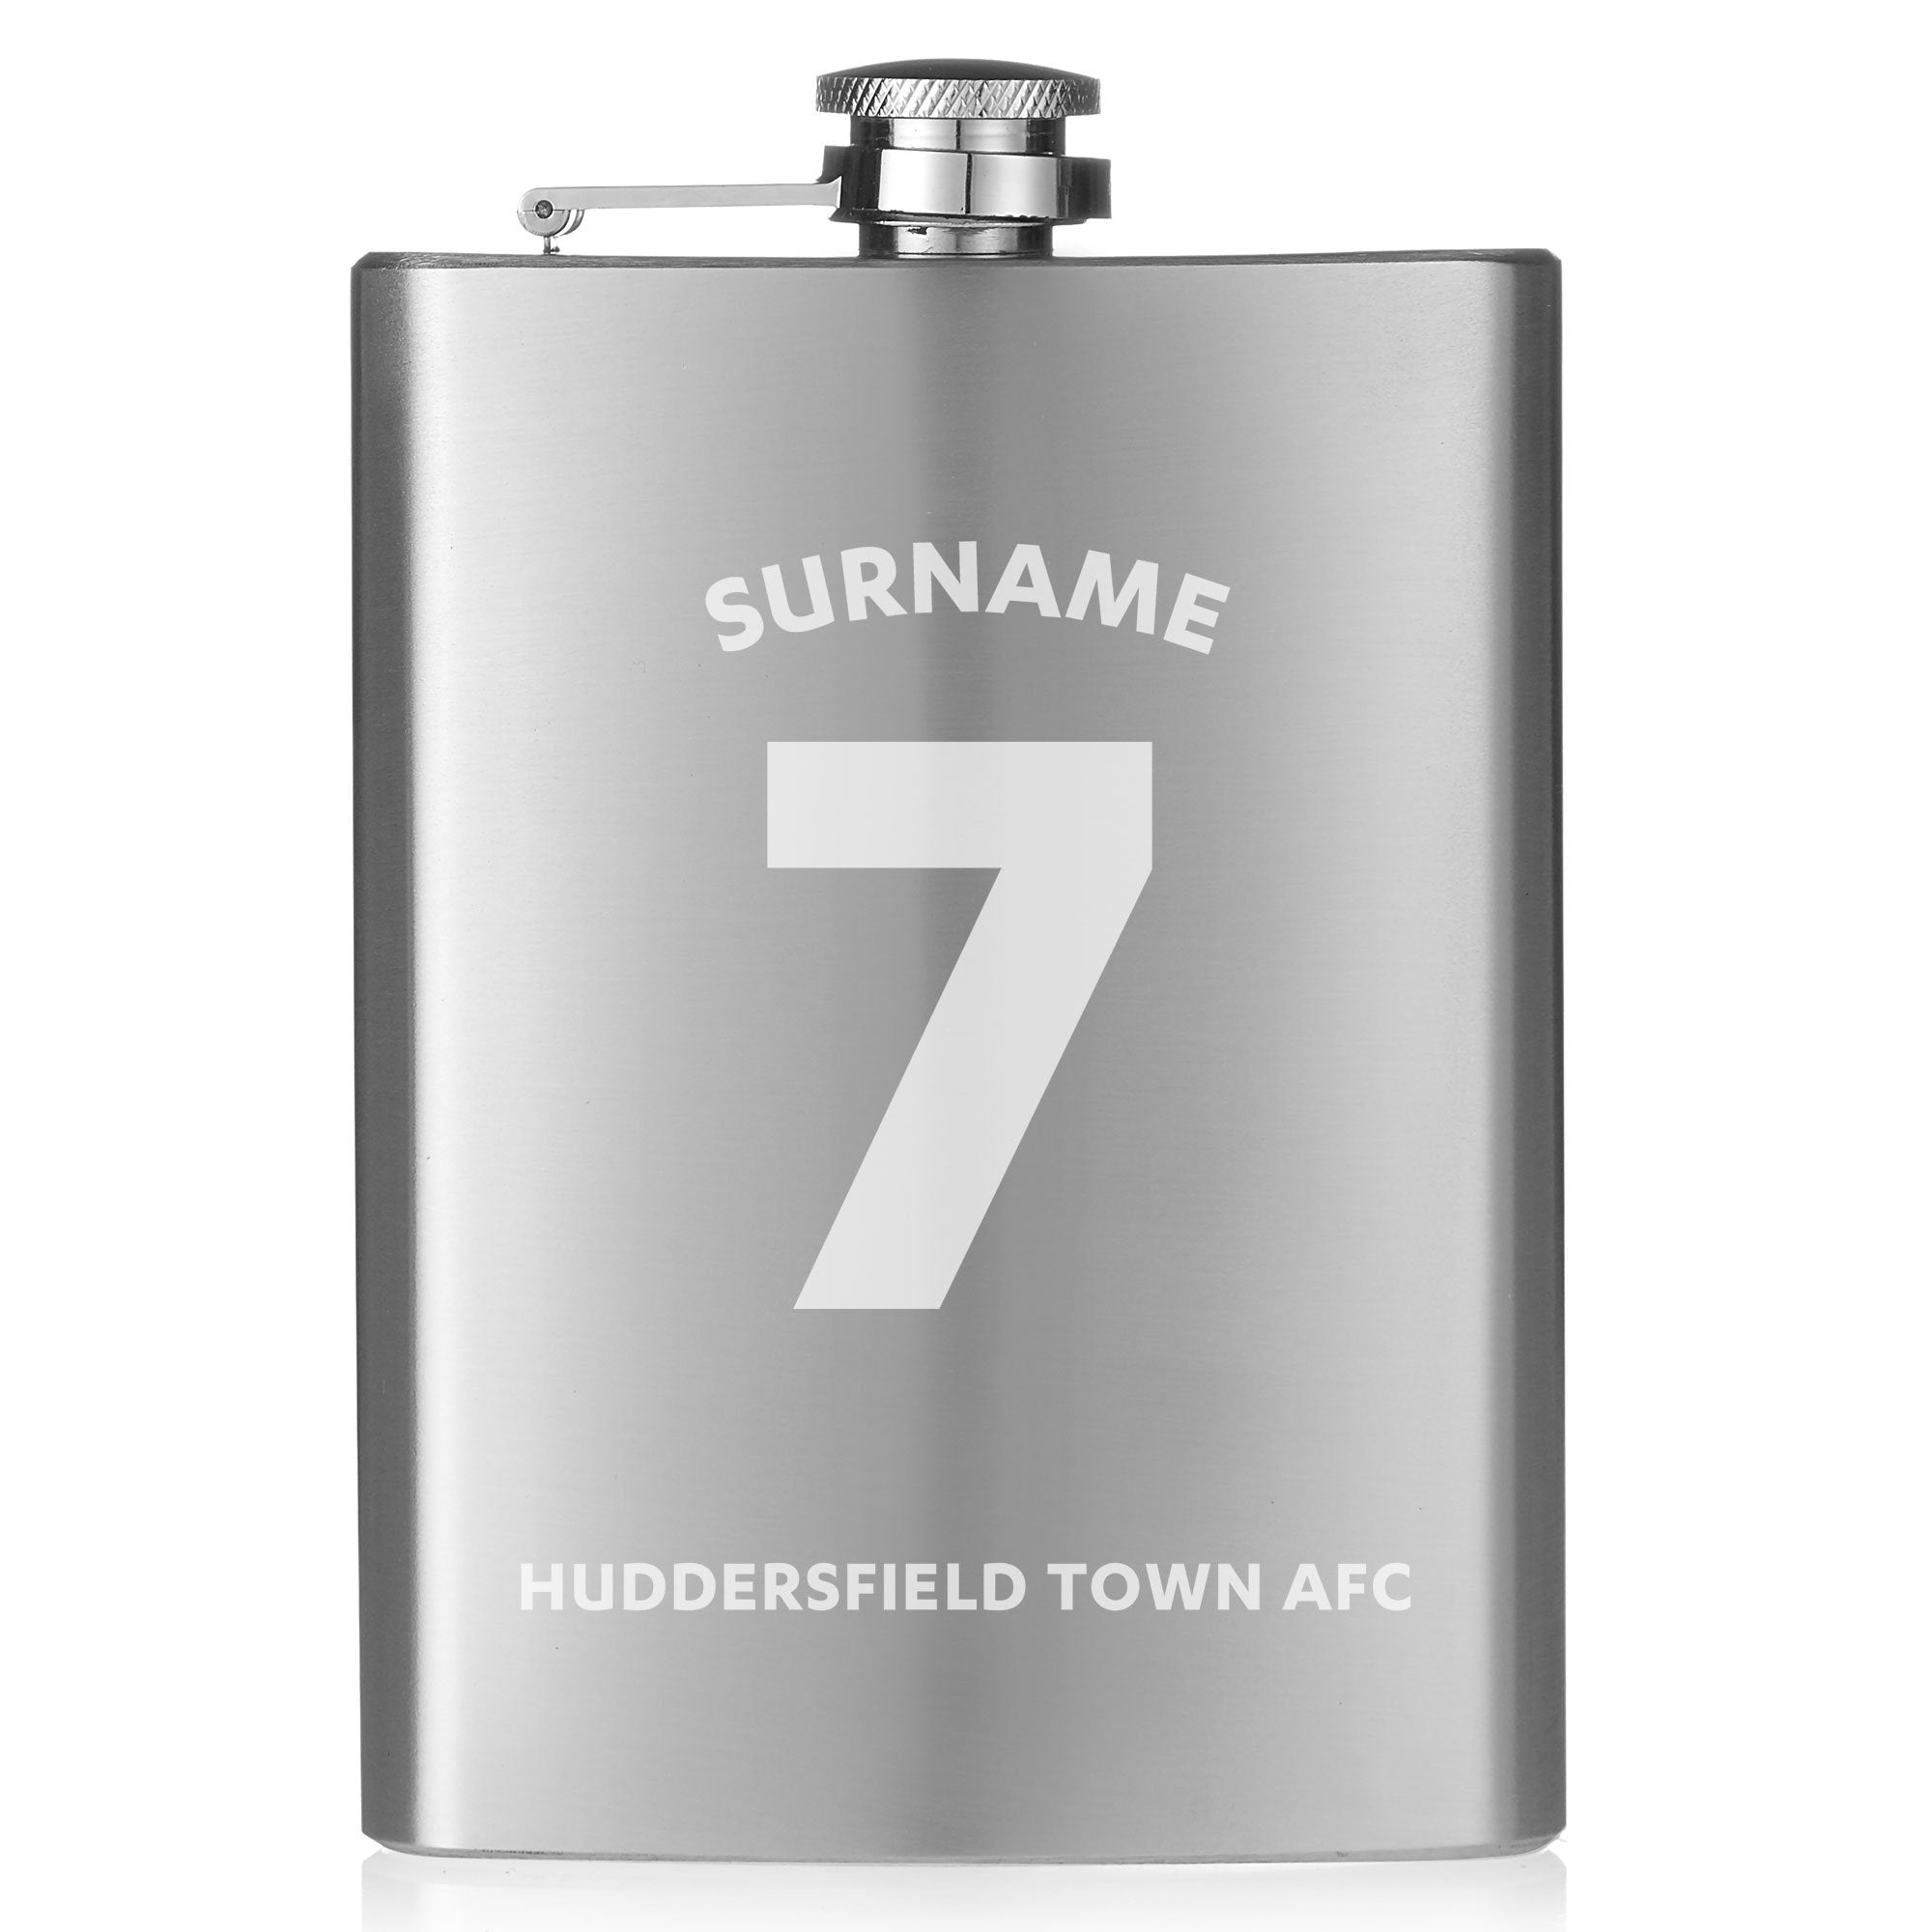 Personalised Huddersfield Town Shirt Hip Flask, Food & Beverage Carriers by Glamorous Gifts UK